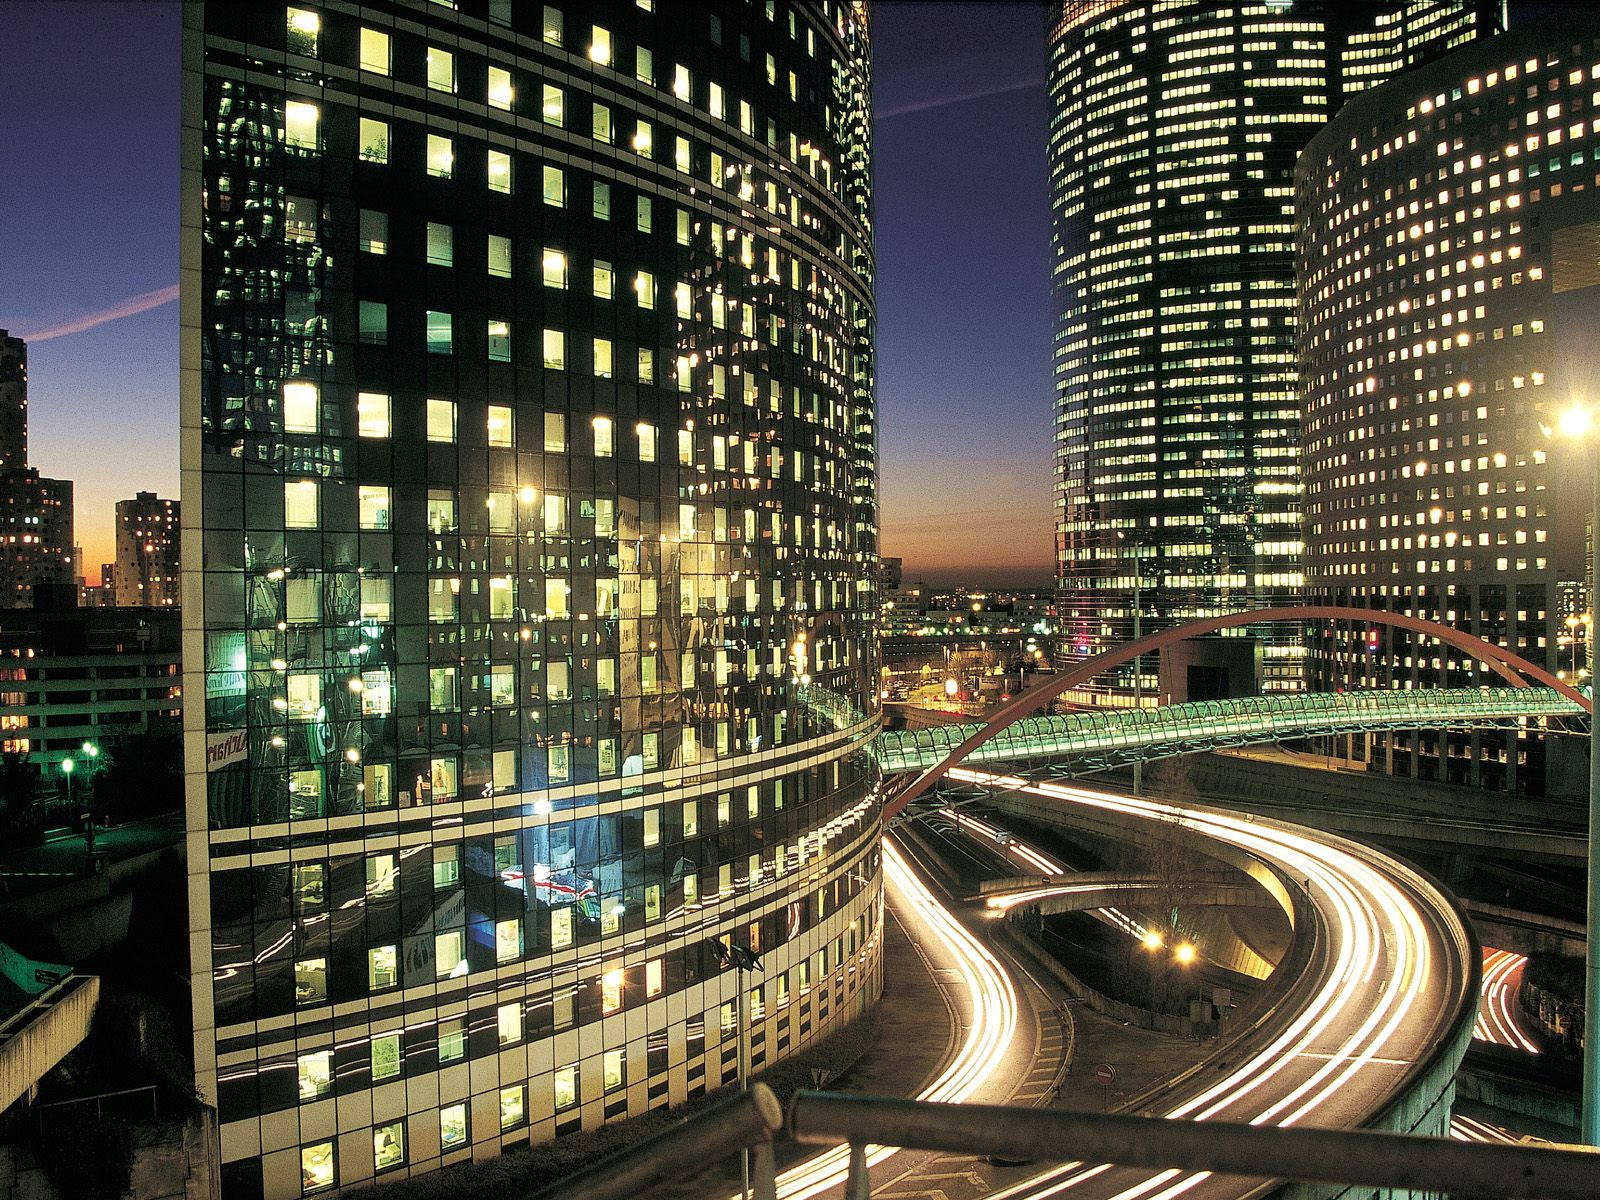 La Defense Business District Paris628374288 - La Defense Business District Paris - Paris, District, Defense, Business, Angeles